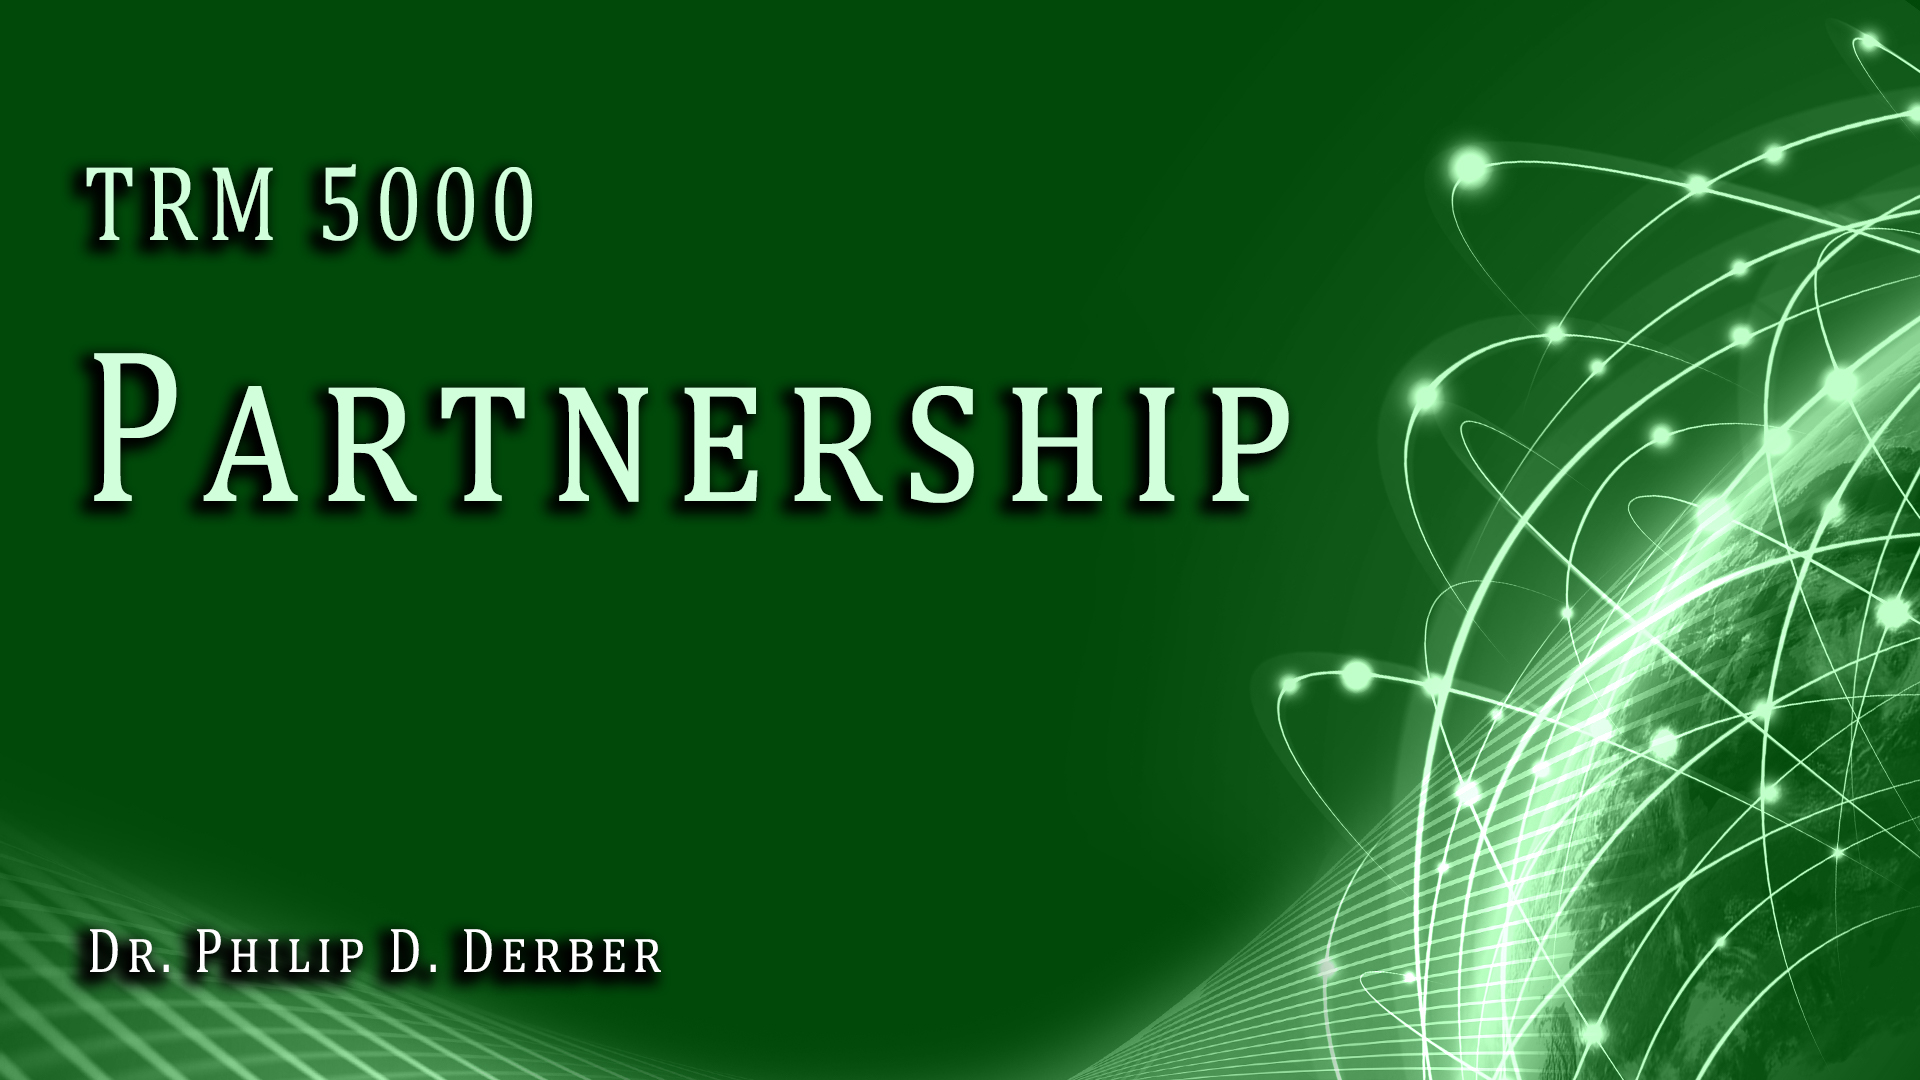 TRM 5000 Partnership